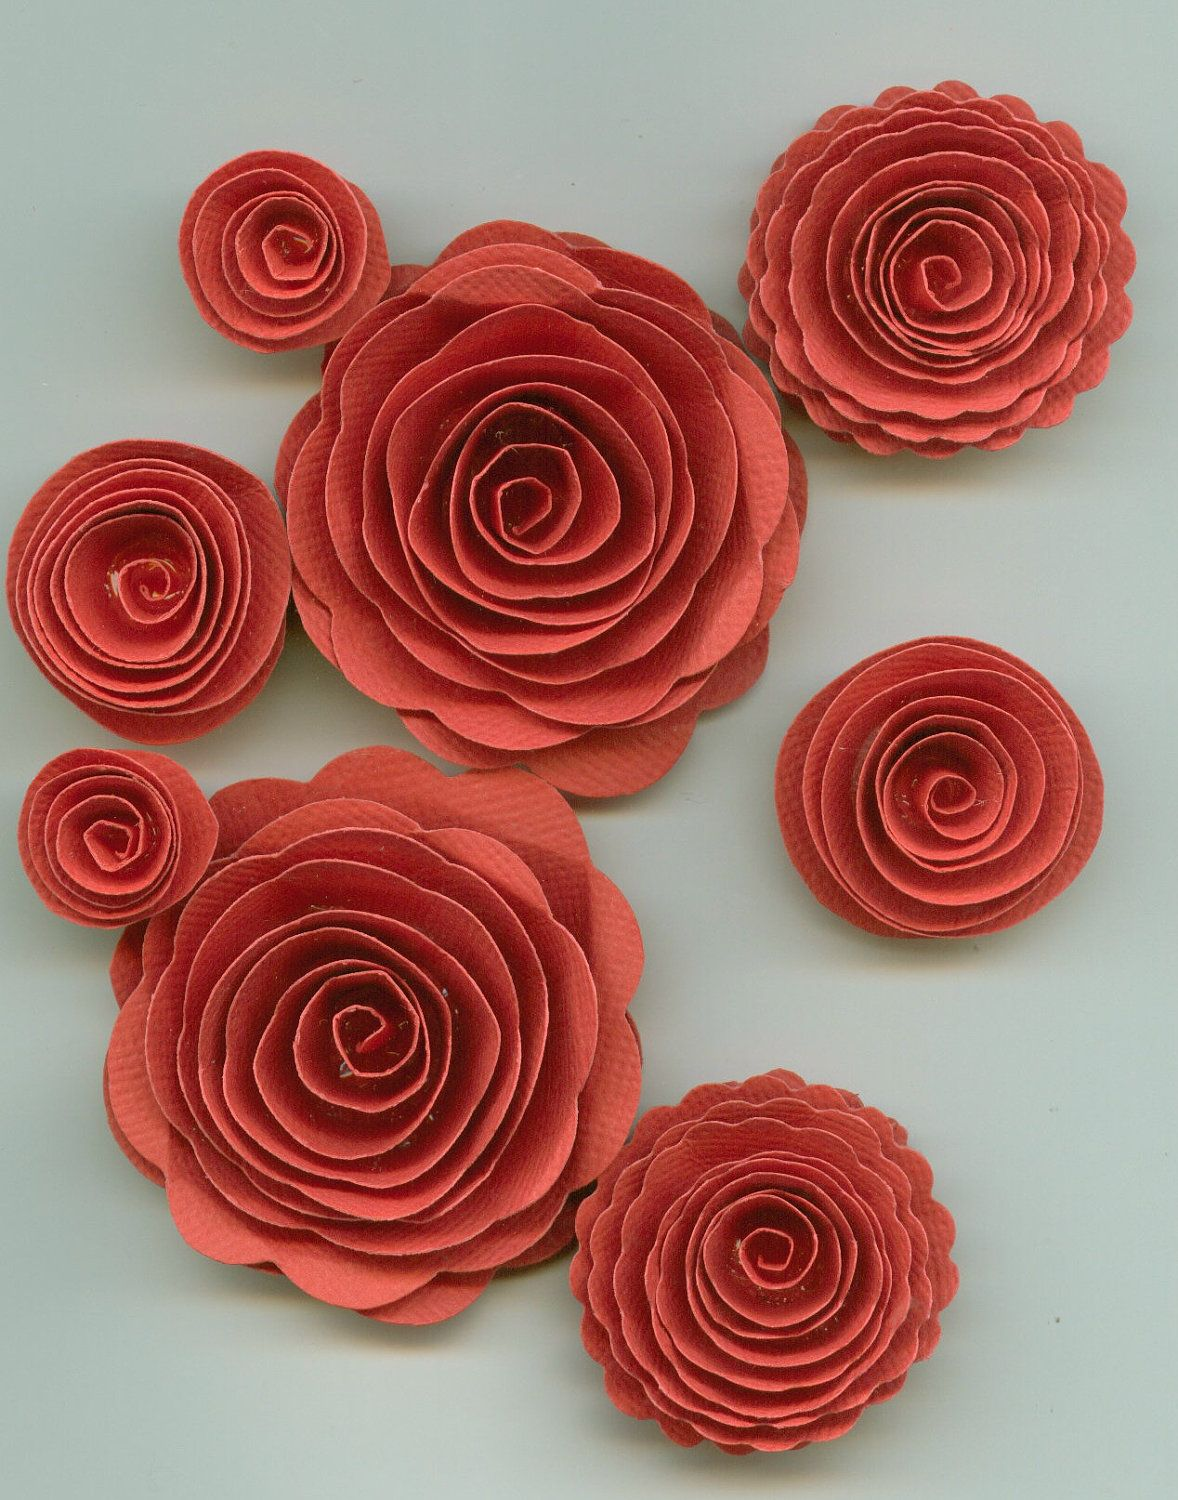 Pink Coral Rose Spiral Paper Flowers For Weddings Bouquets Events